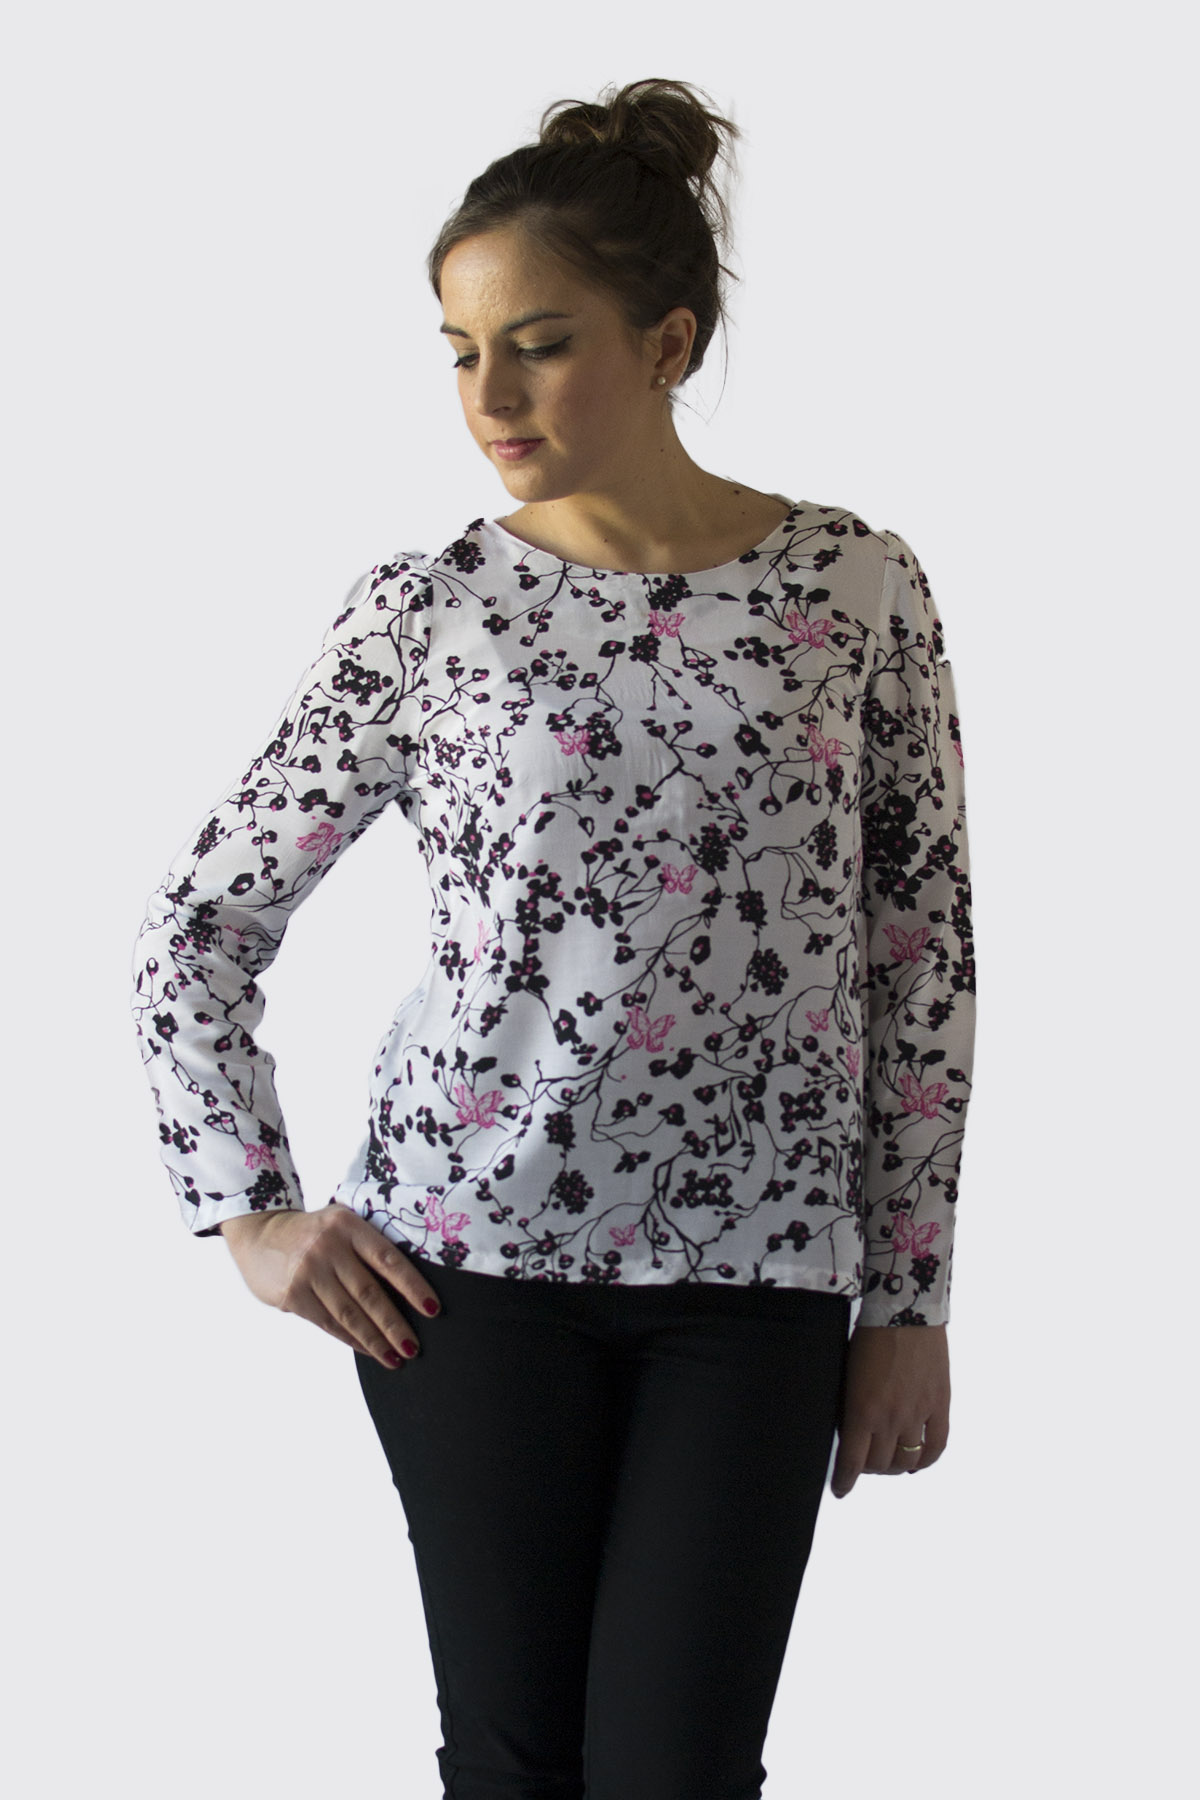 Sew Over It Ultimate SHift top